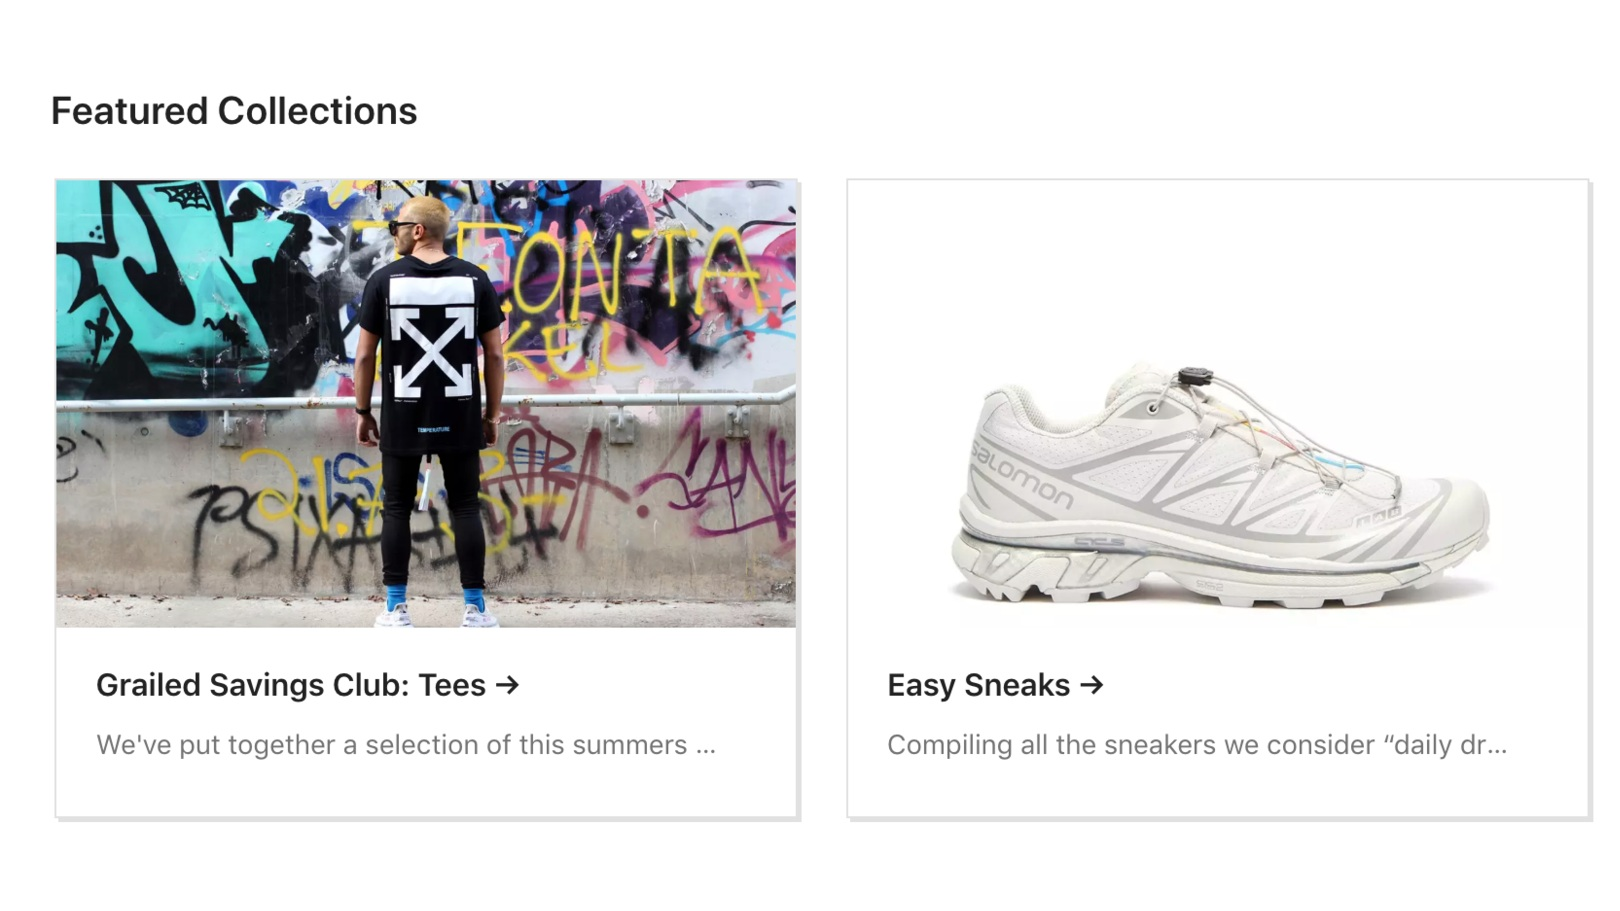 Grailed - Men and all genders who like men's fashion and streetwear—check out Grailed. The site curates the largest men's fashion marketplace. Every transaction conducted through Grailed with PayPal is eligible for a full refund if an item is not authentic.